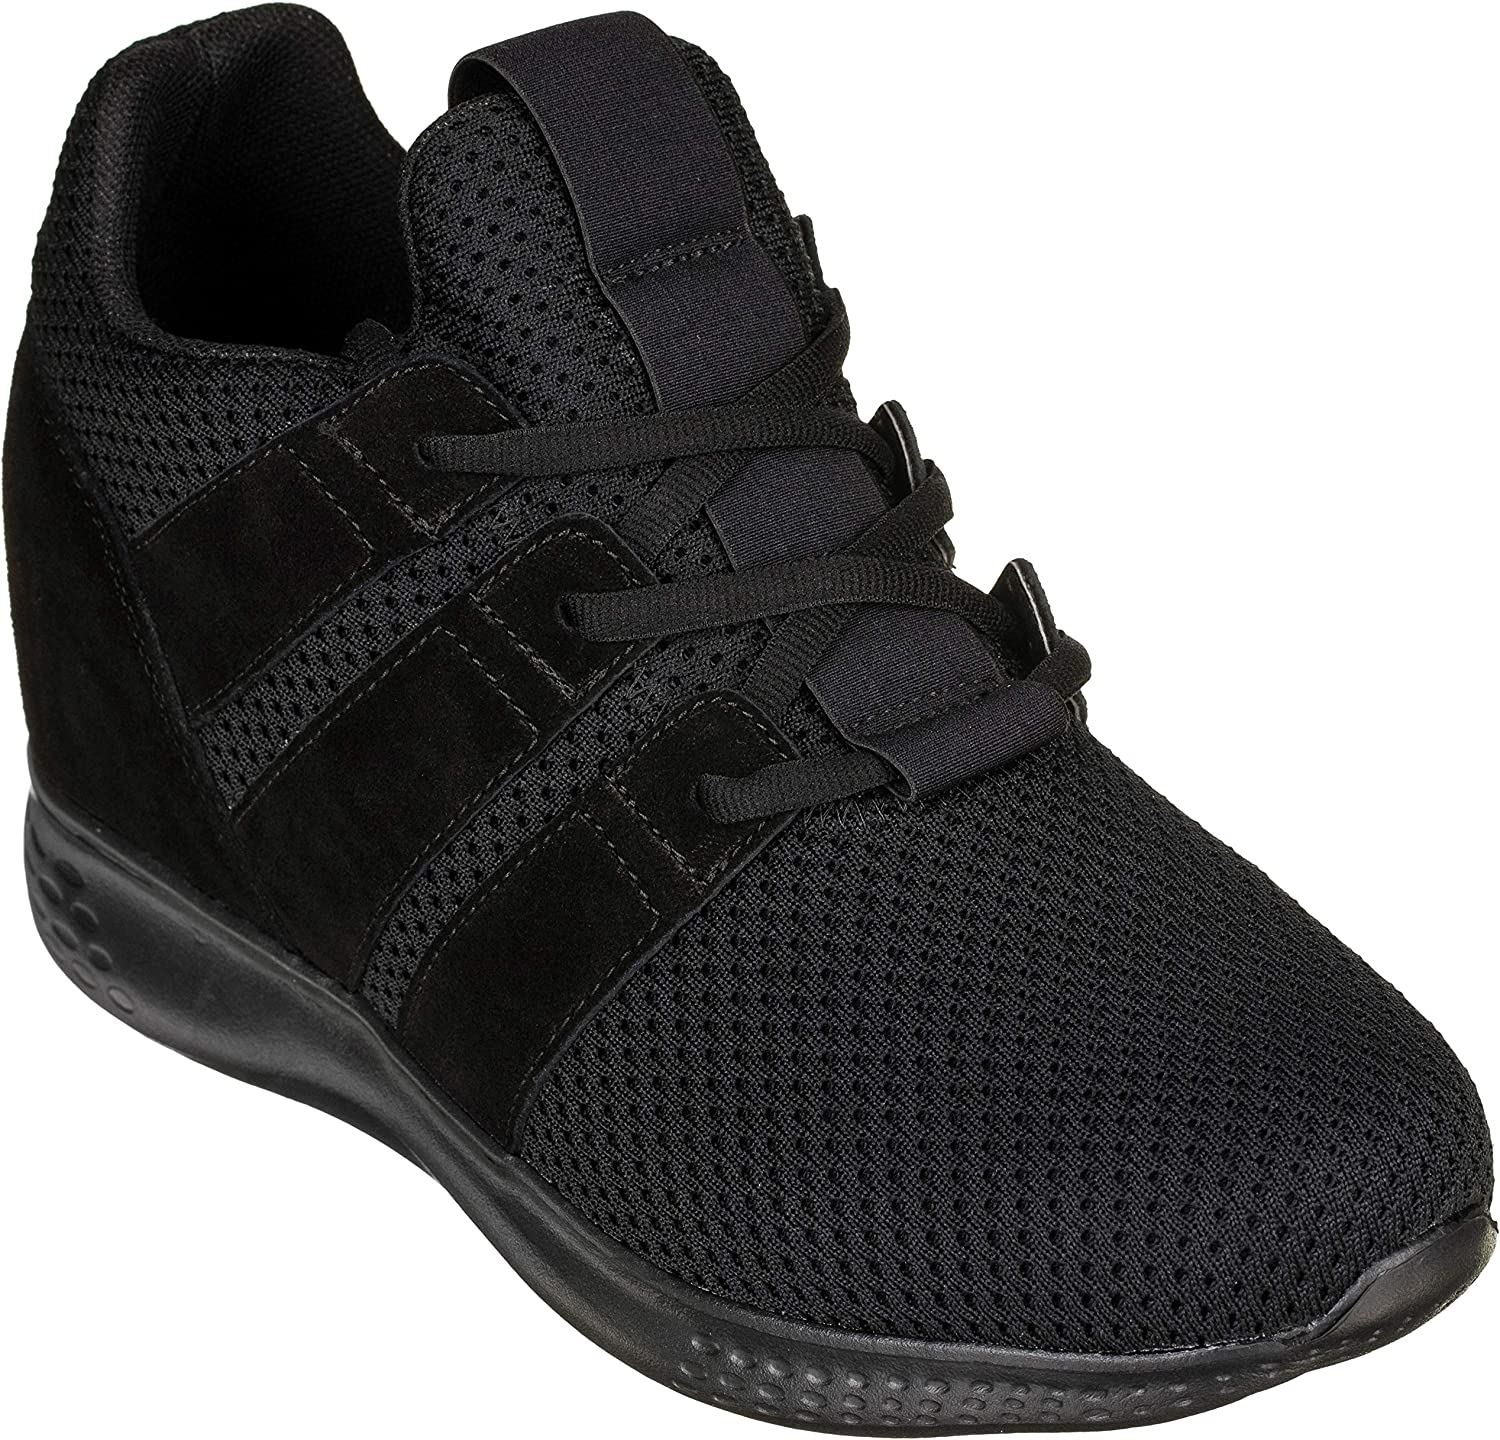 CALTO Men's Invisible Height Increasing Elevator shoes - Mesh Suede Super Lightweight Lace-up Sporty Trainer Sneakers - 3 Inches Taller